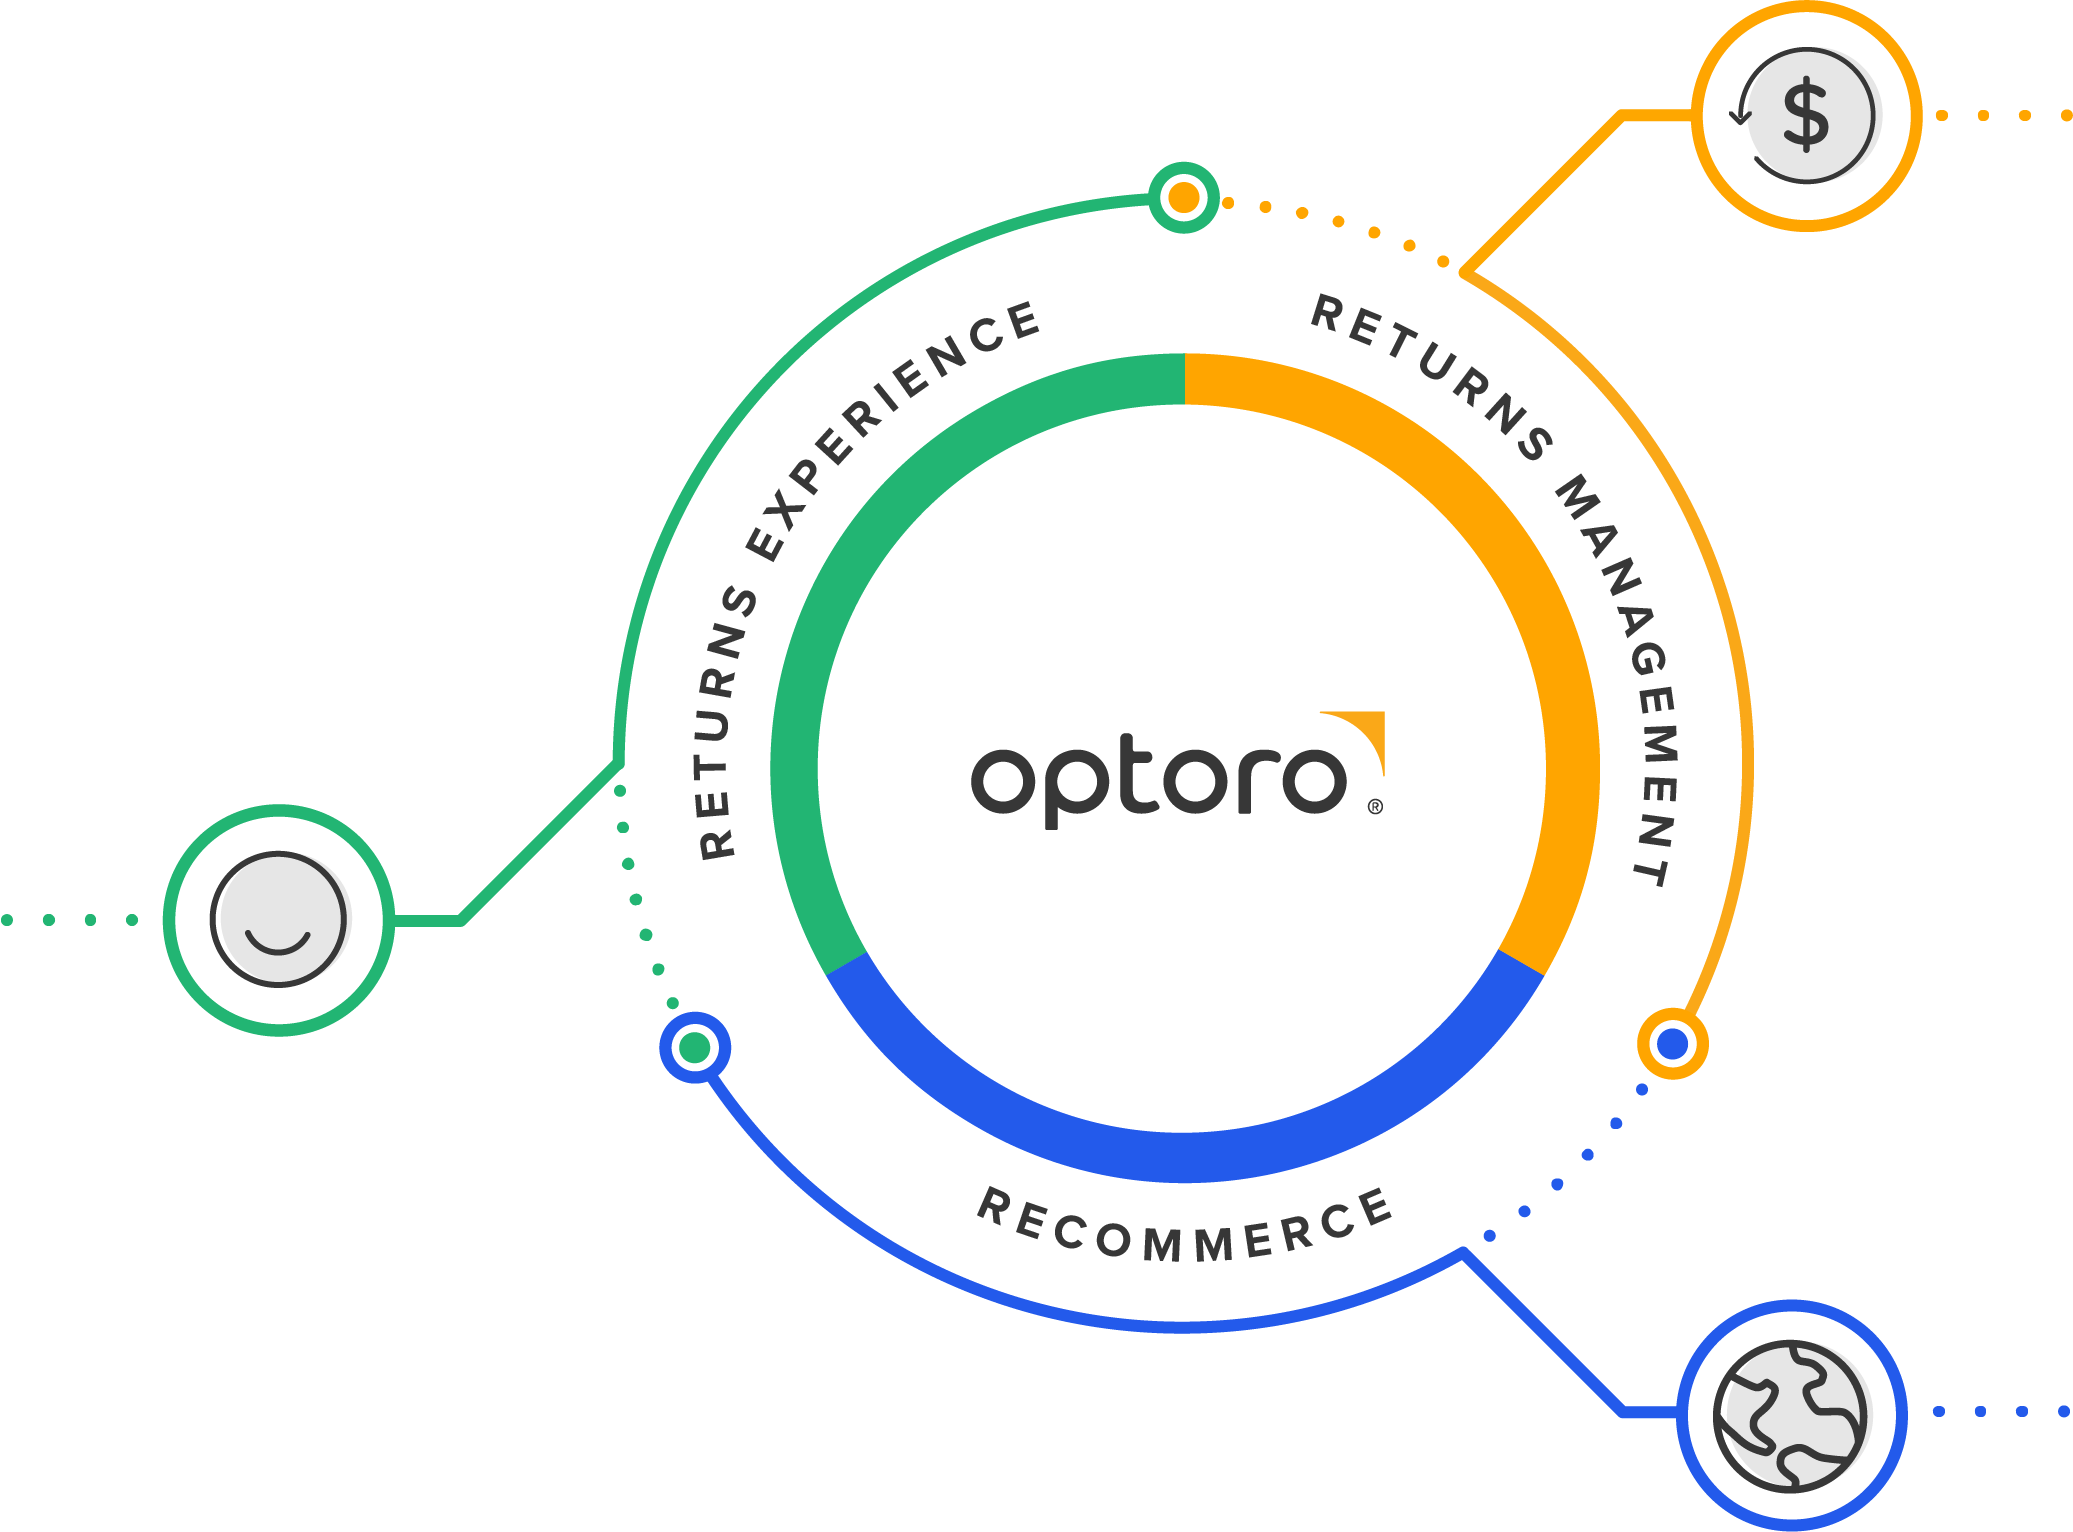 Optoro_Solution Graphic@2x